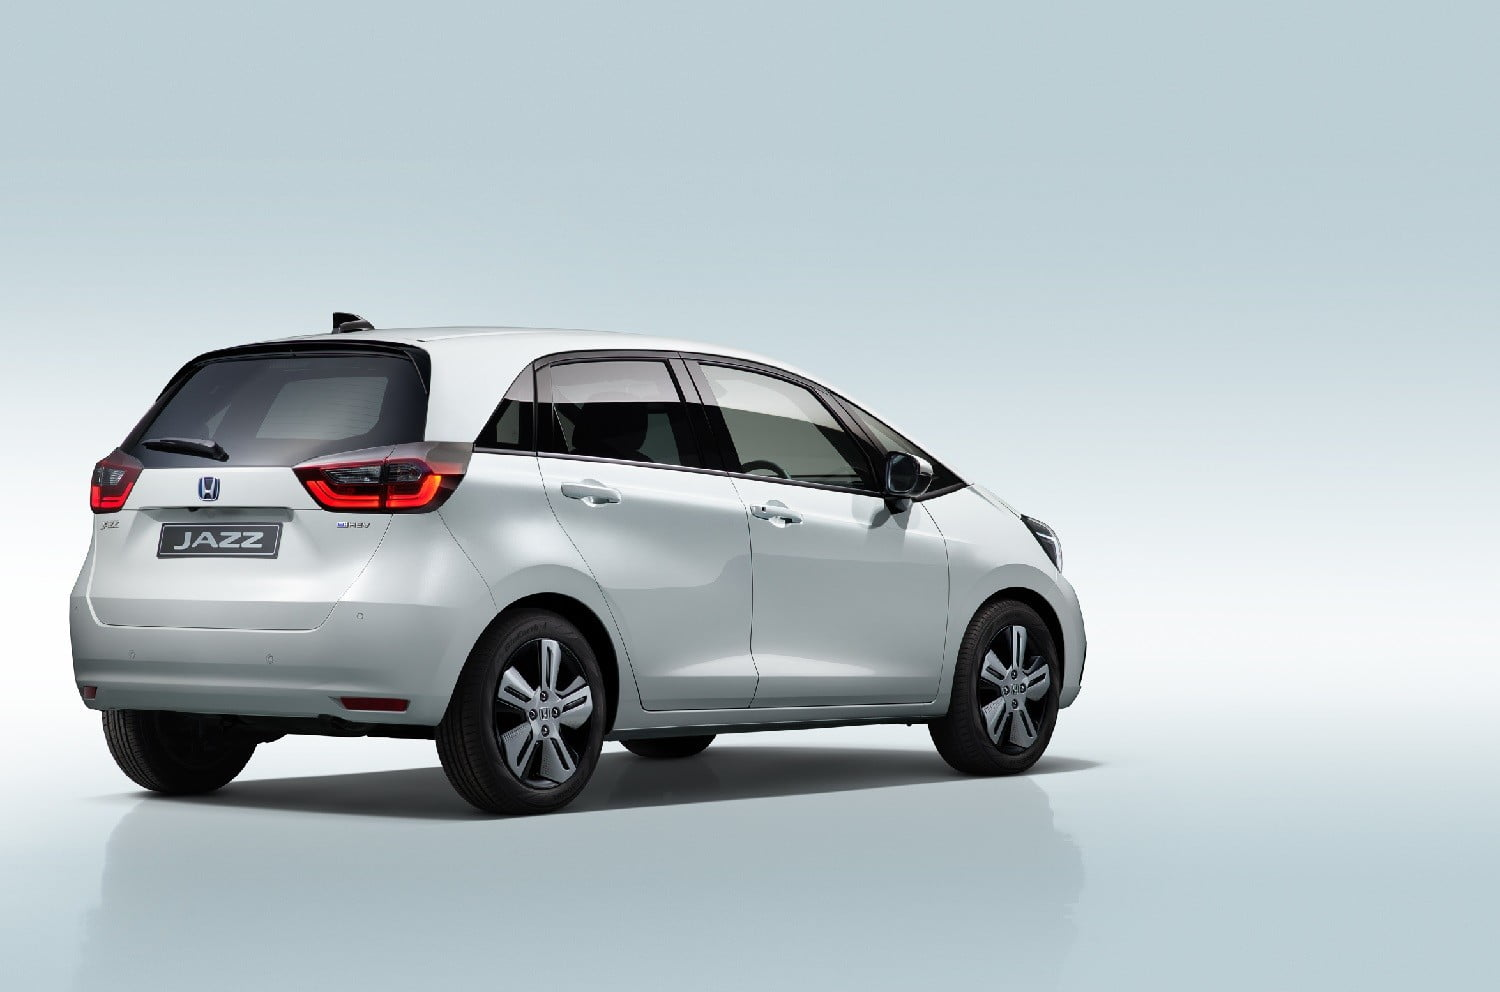 2020 honda fit hybrid unveiled at the 2019 tokyo motor show jazz 5